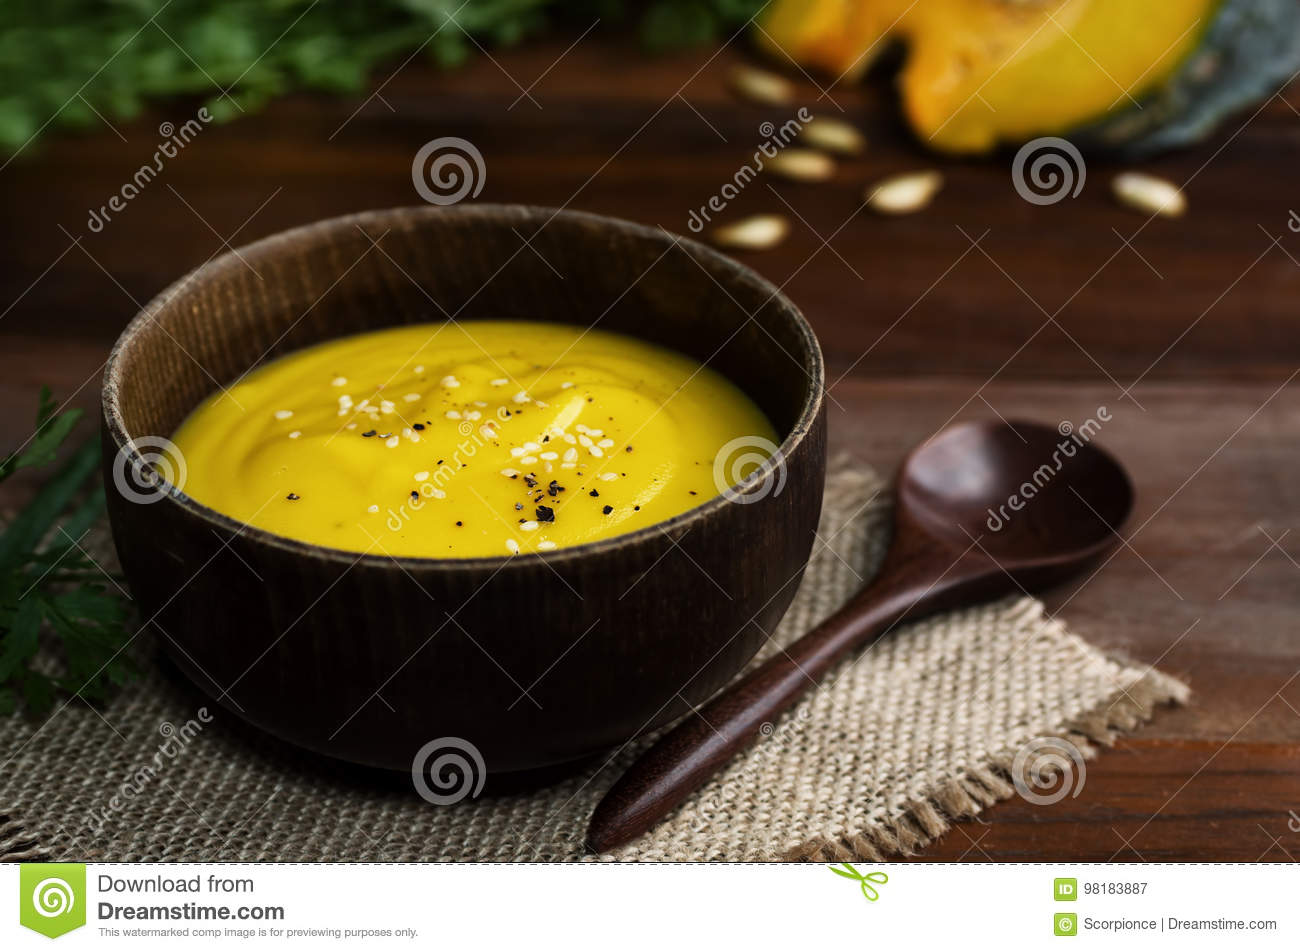 Wooden bowl of vibrant yellow pumpkin soup with spoon on table